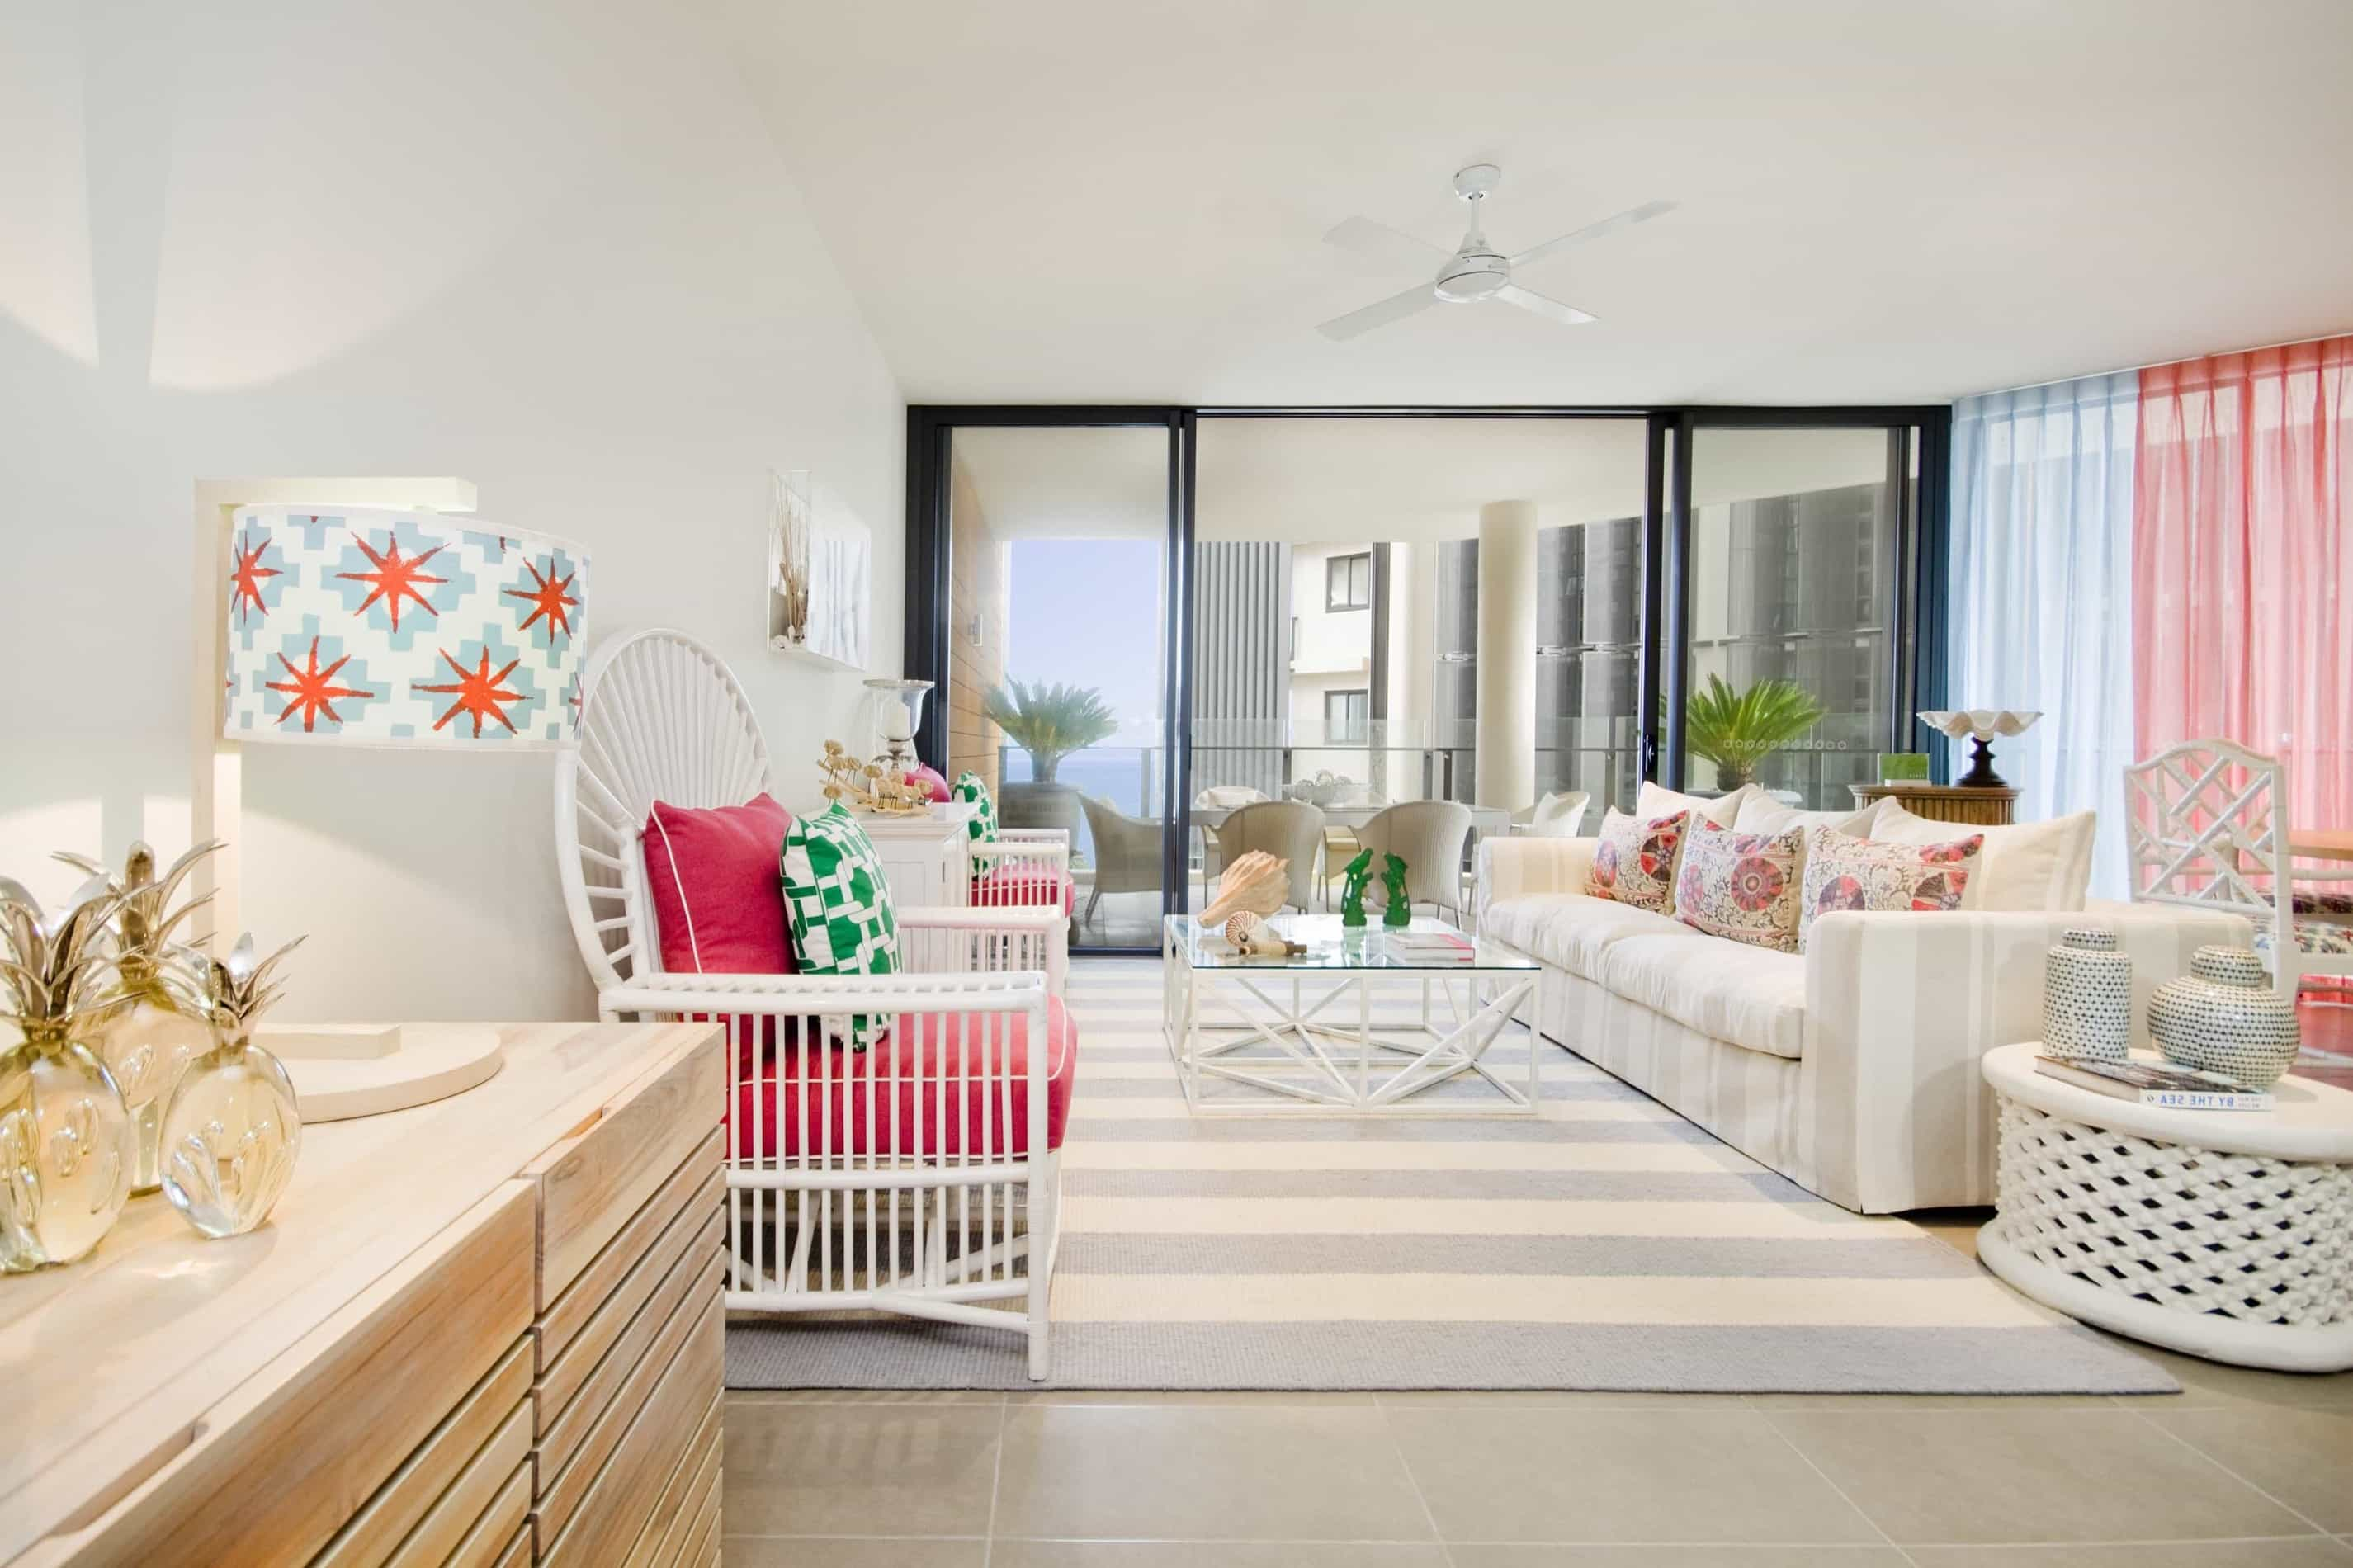 Featured Image of White Coastal Living Room With Hot Pink Cushions